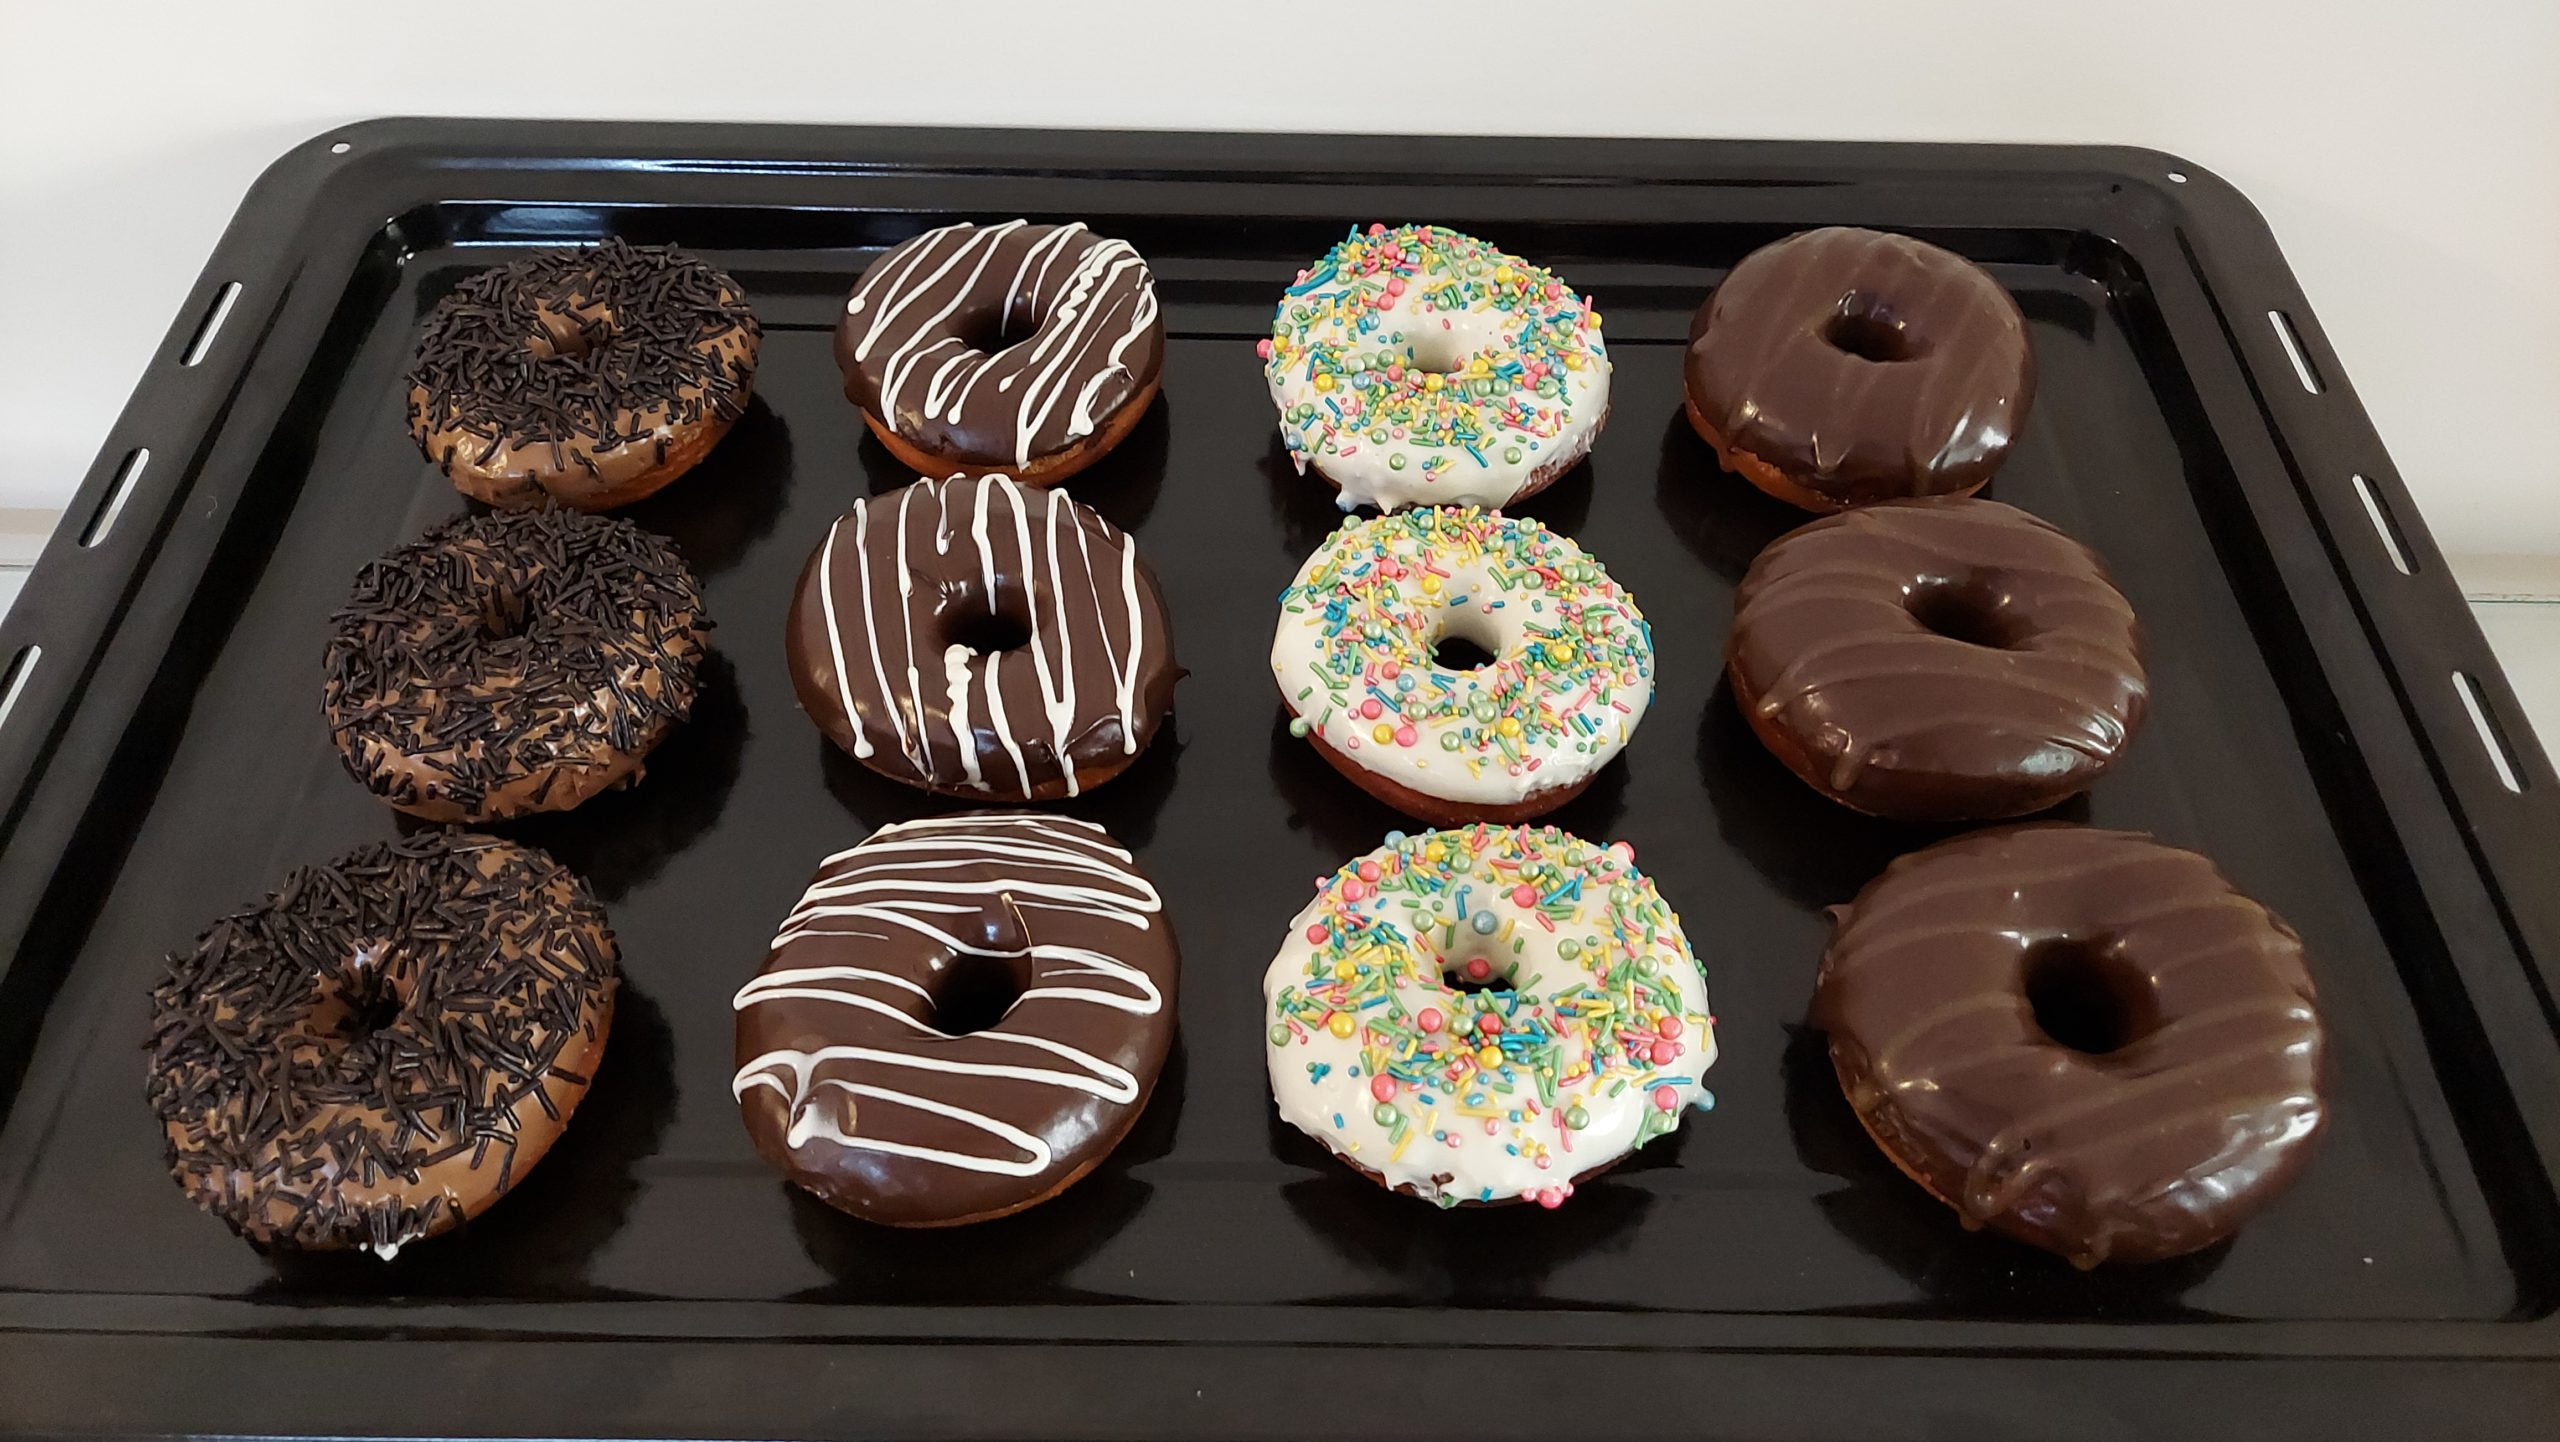 Donuts (4 pieces) Designs, Images, Price Near Me